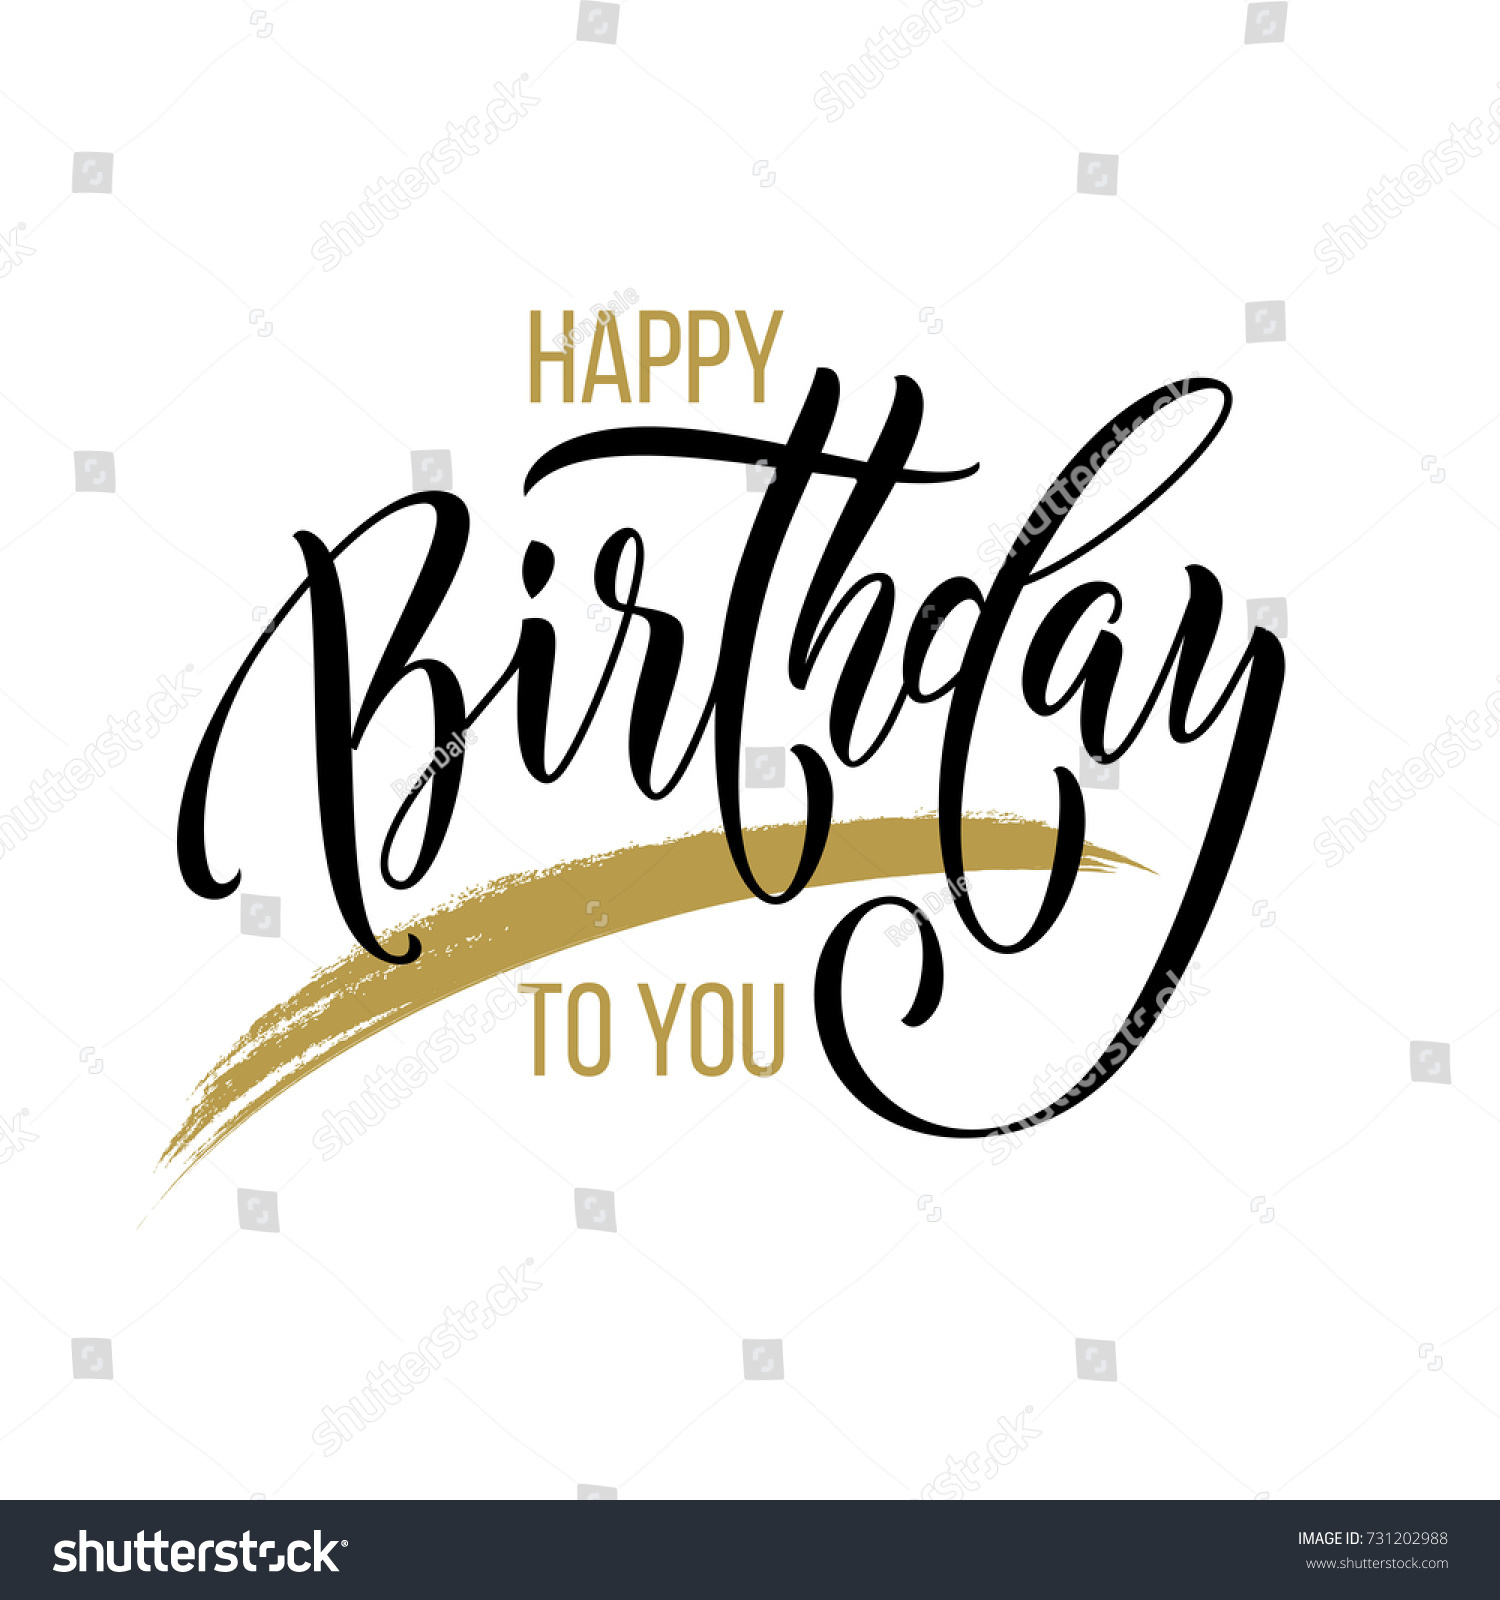 Happy Birthday You Calligraphy Greeting Card Stock Vector 731202988 - Shutterstock